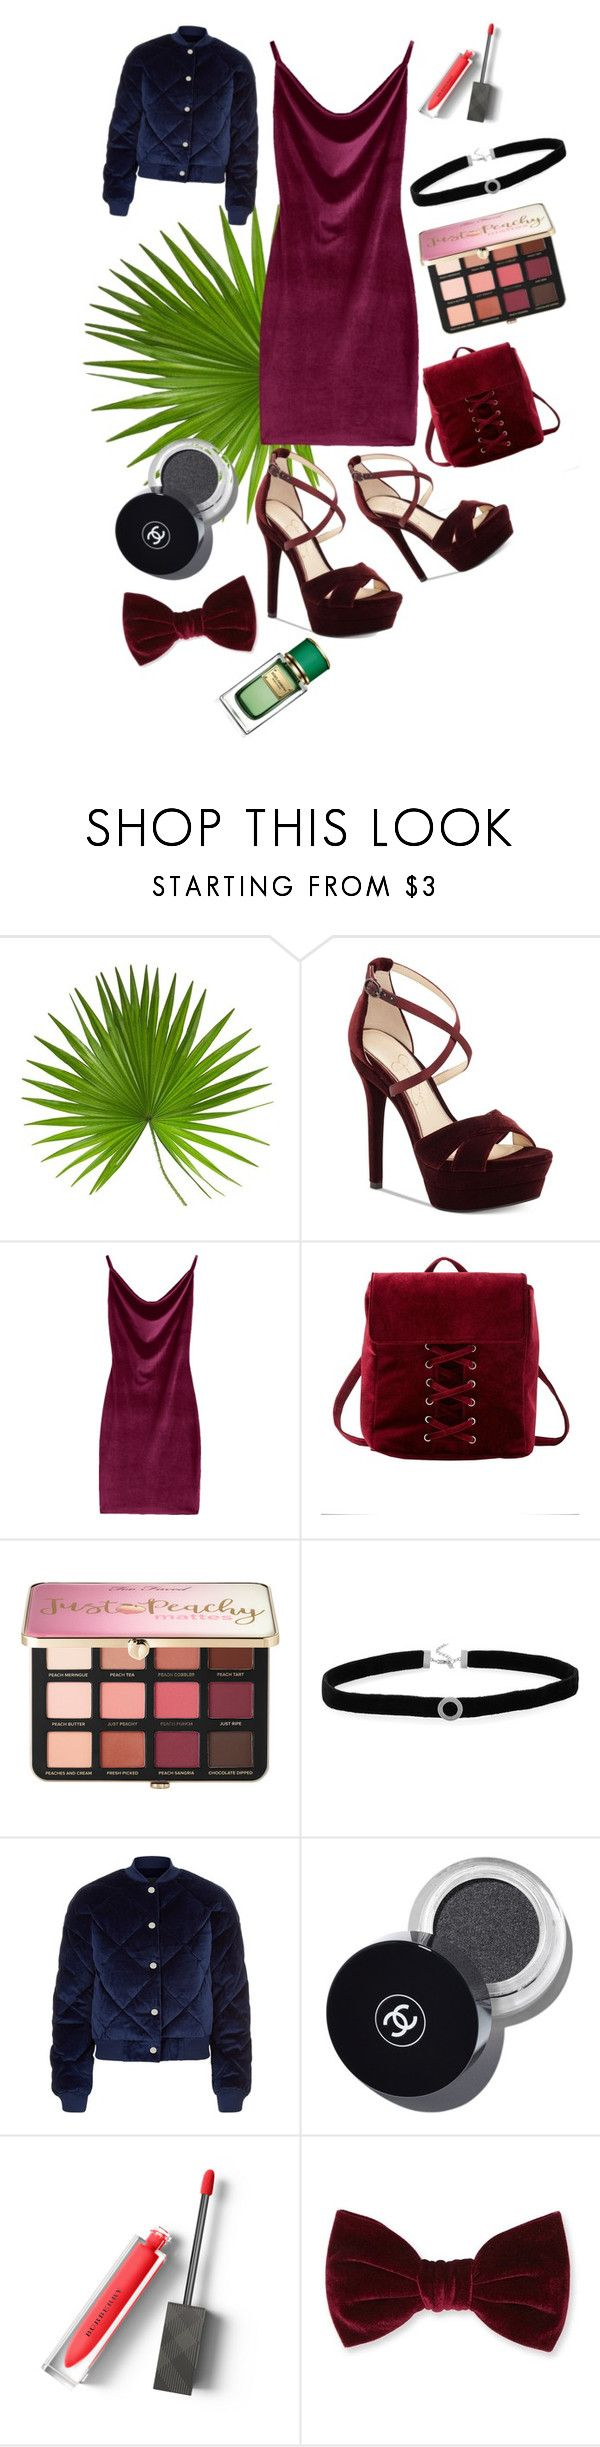 """Velvet"" by heidihansen0505 on Polyvore featuring Jessica Simpson, Charlotte Russe, Sephora Collection, BillyTheTree, Maje, Burberry, Forever 21 and Dolce&Gabbana"